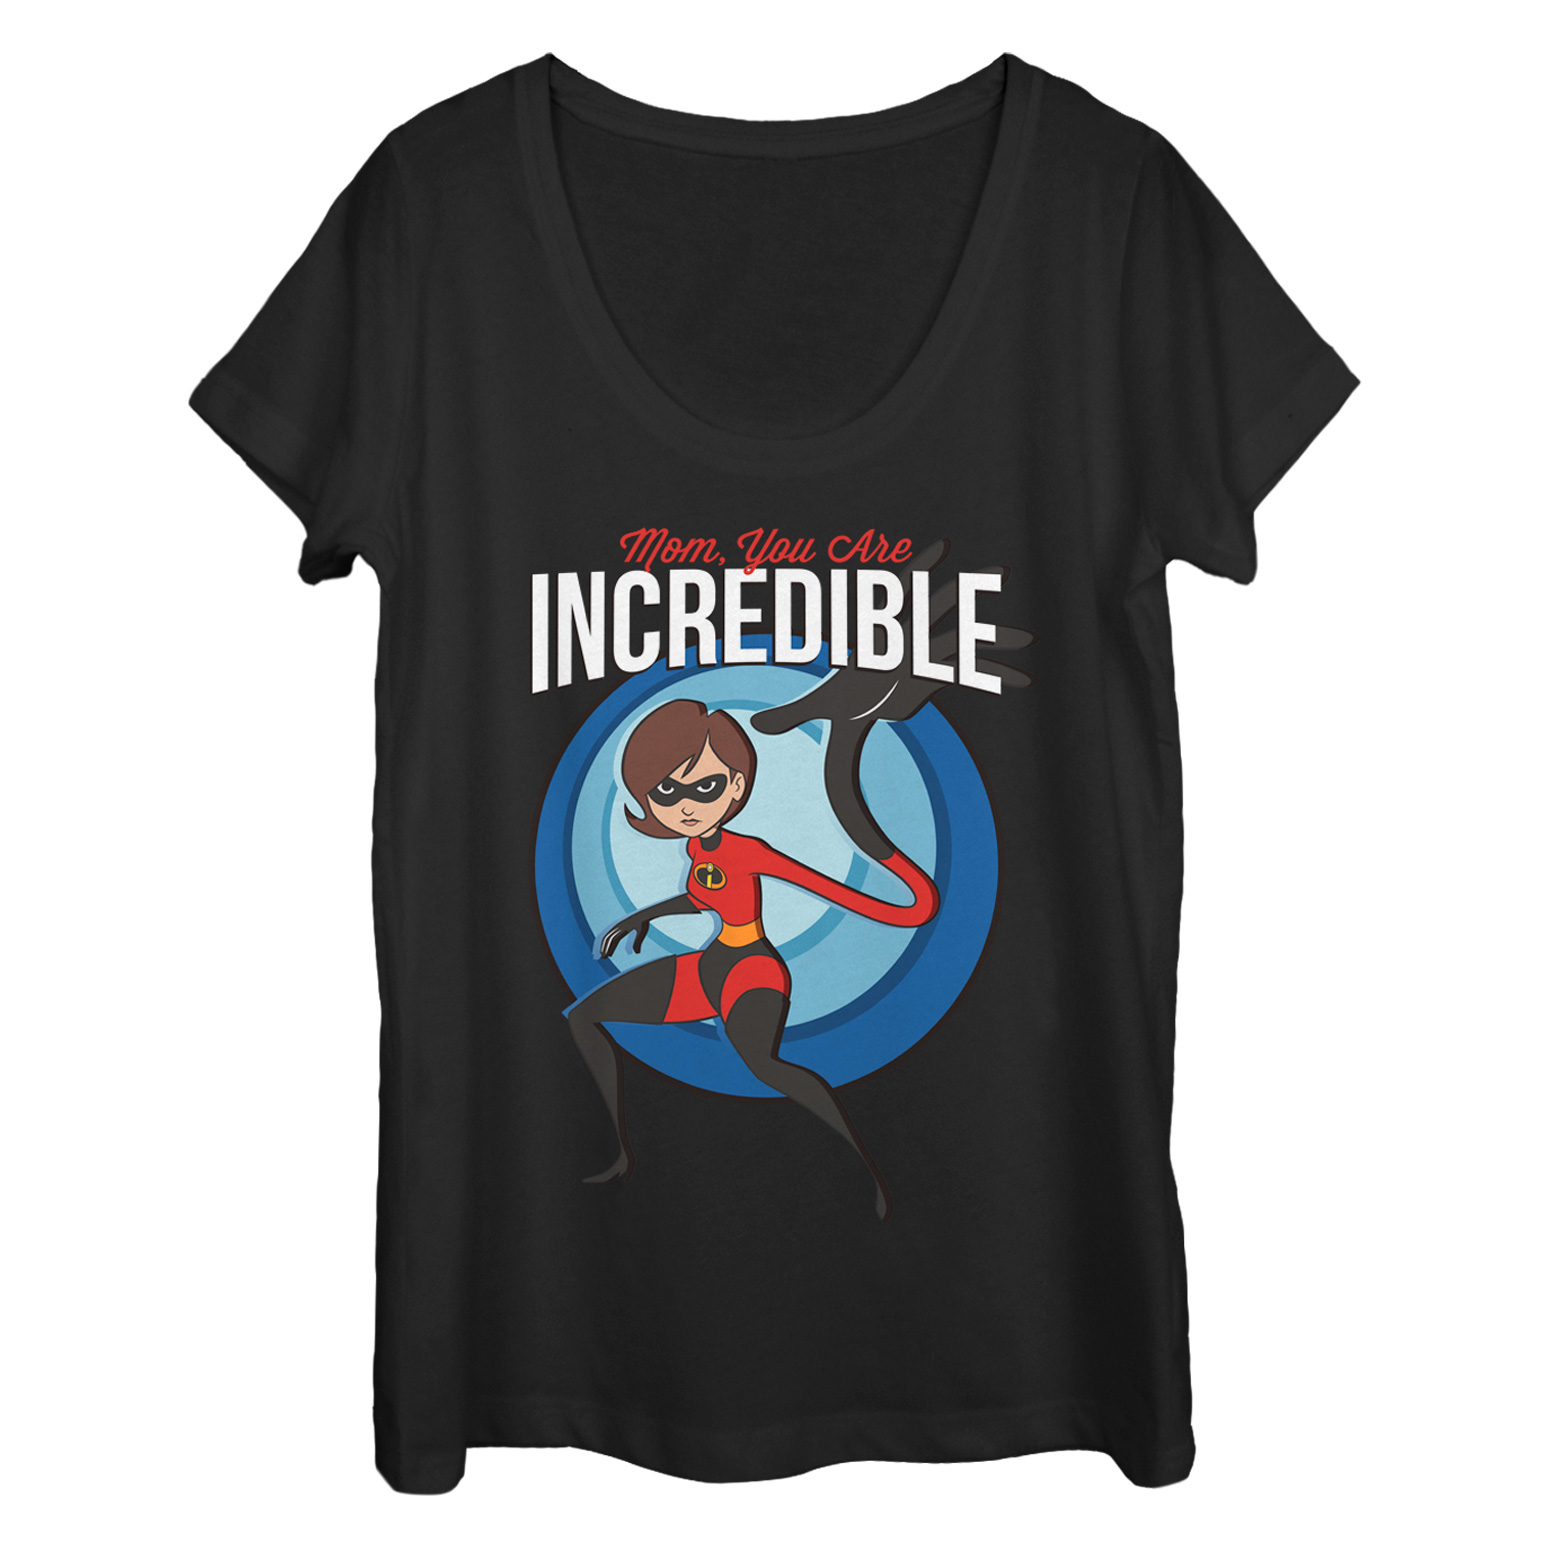 The Incredibles 2 Women's Mom is Incredible Scoop Neck T-Shirt